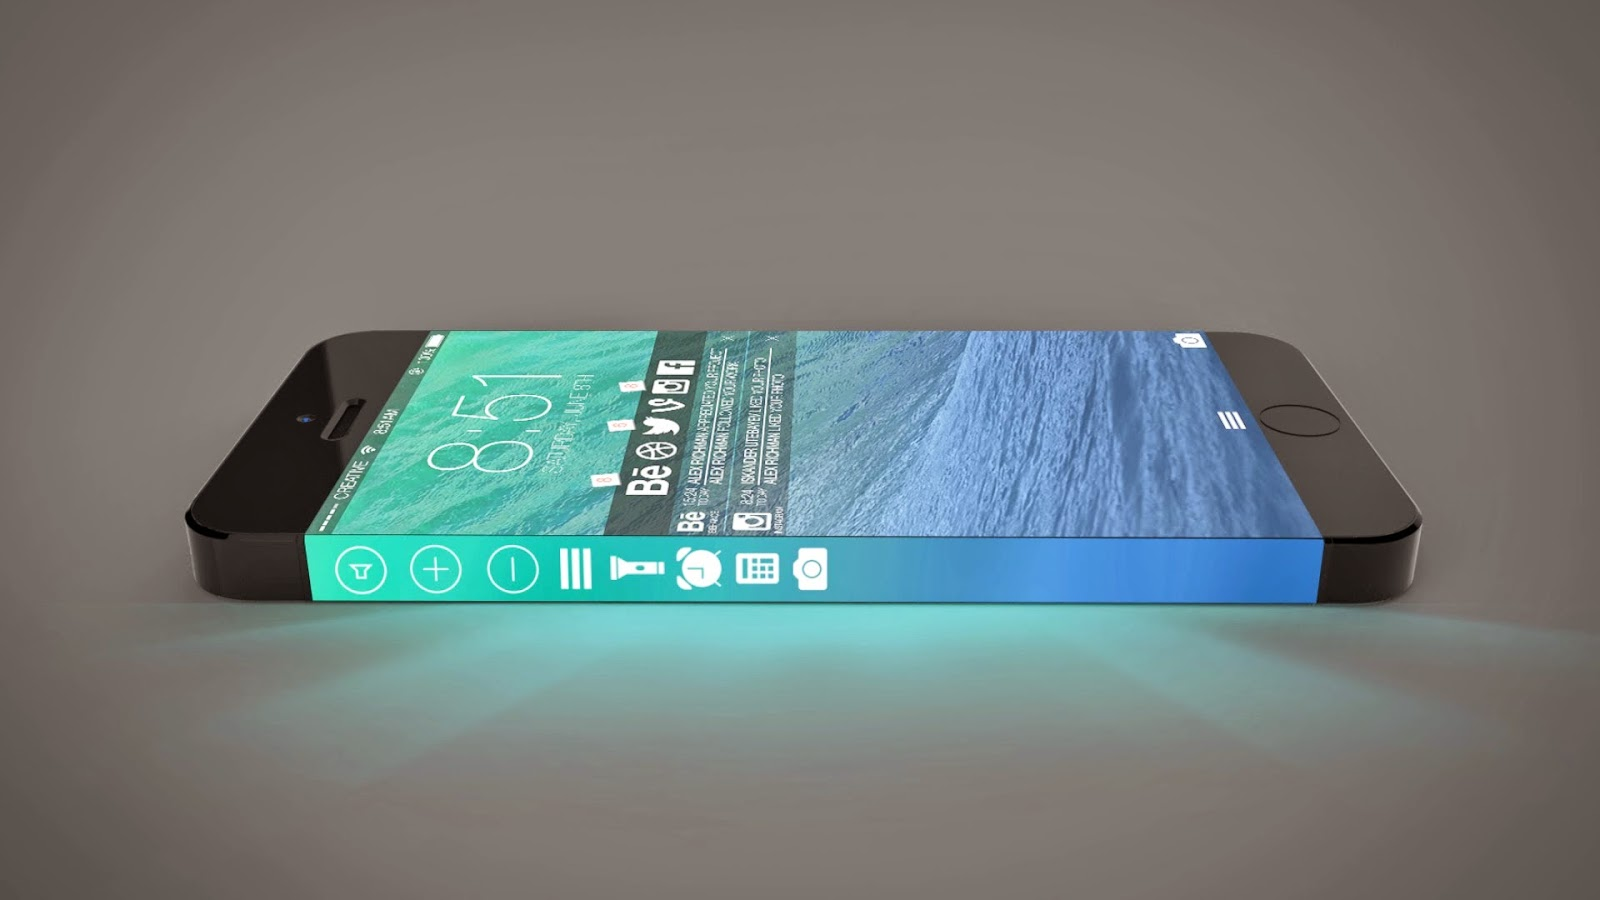 Apple IPhone 8 Rumored To Have Facial Recognition Powered By New Laser Sensor